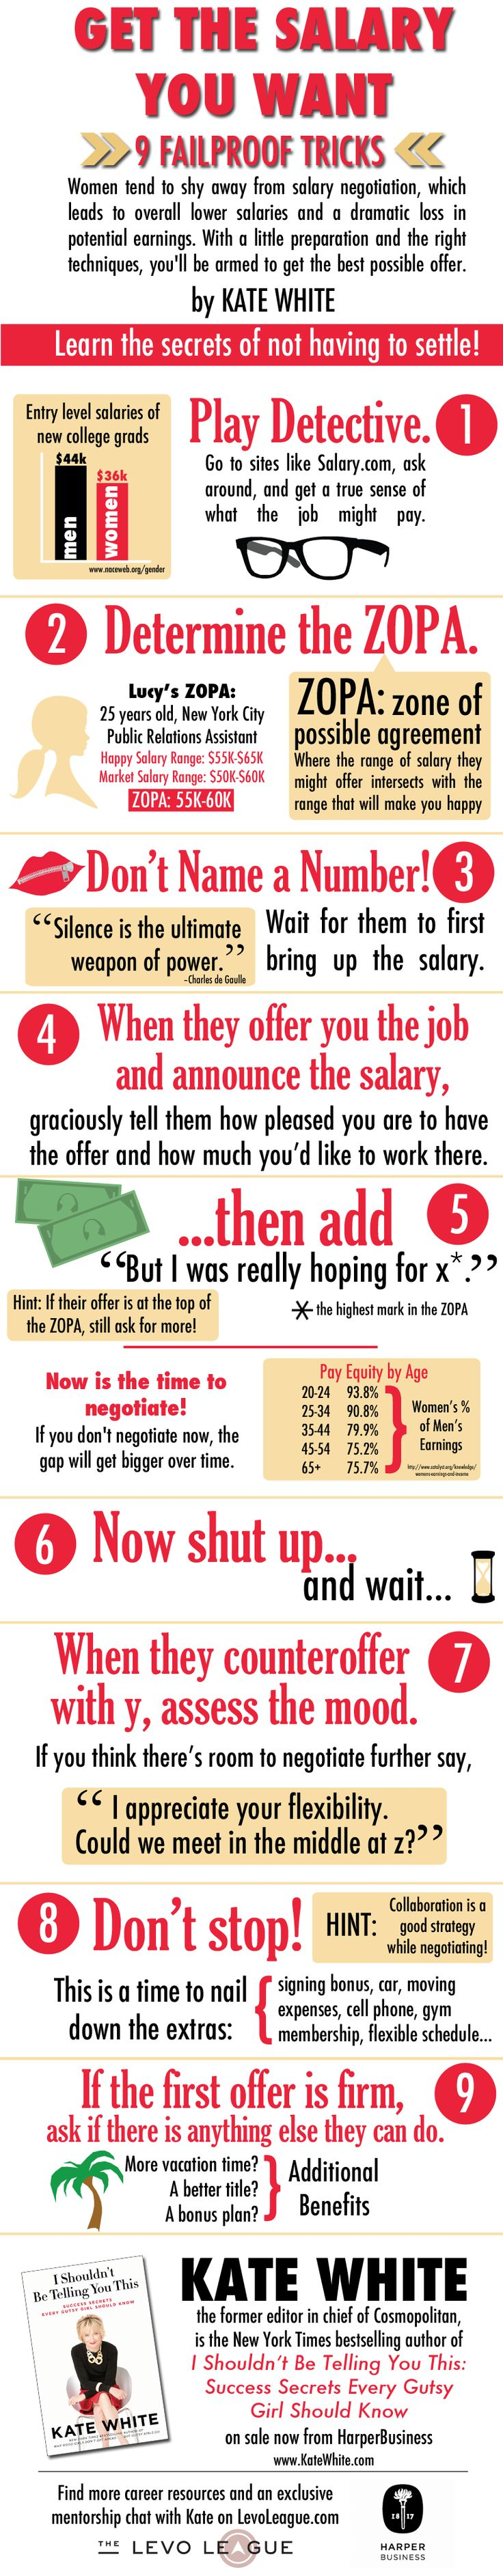 17 best images about job search resume tips 9 failproof salary negotiation tricks from kate white